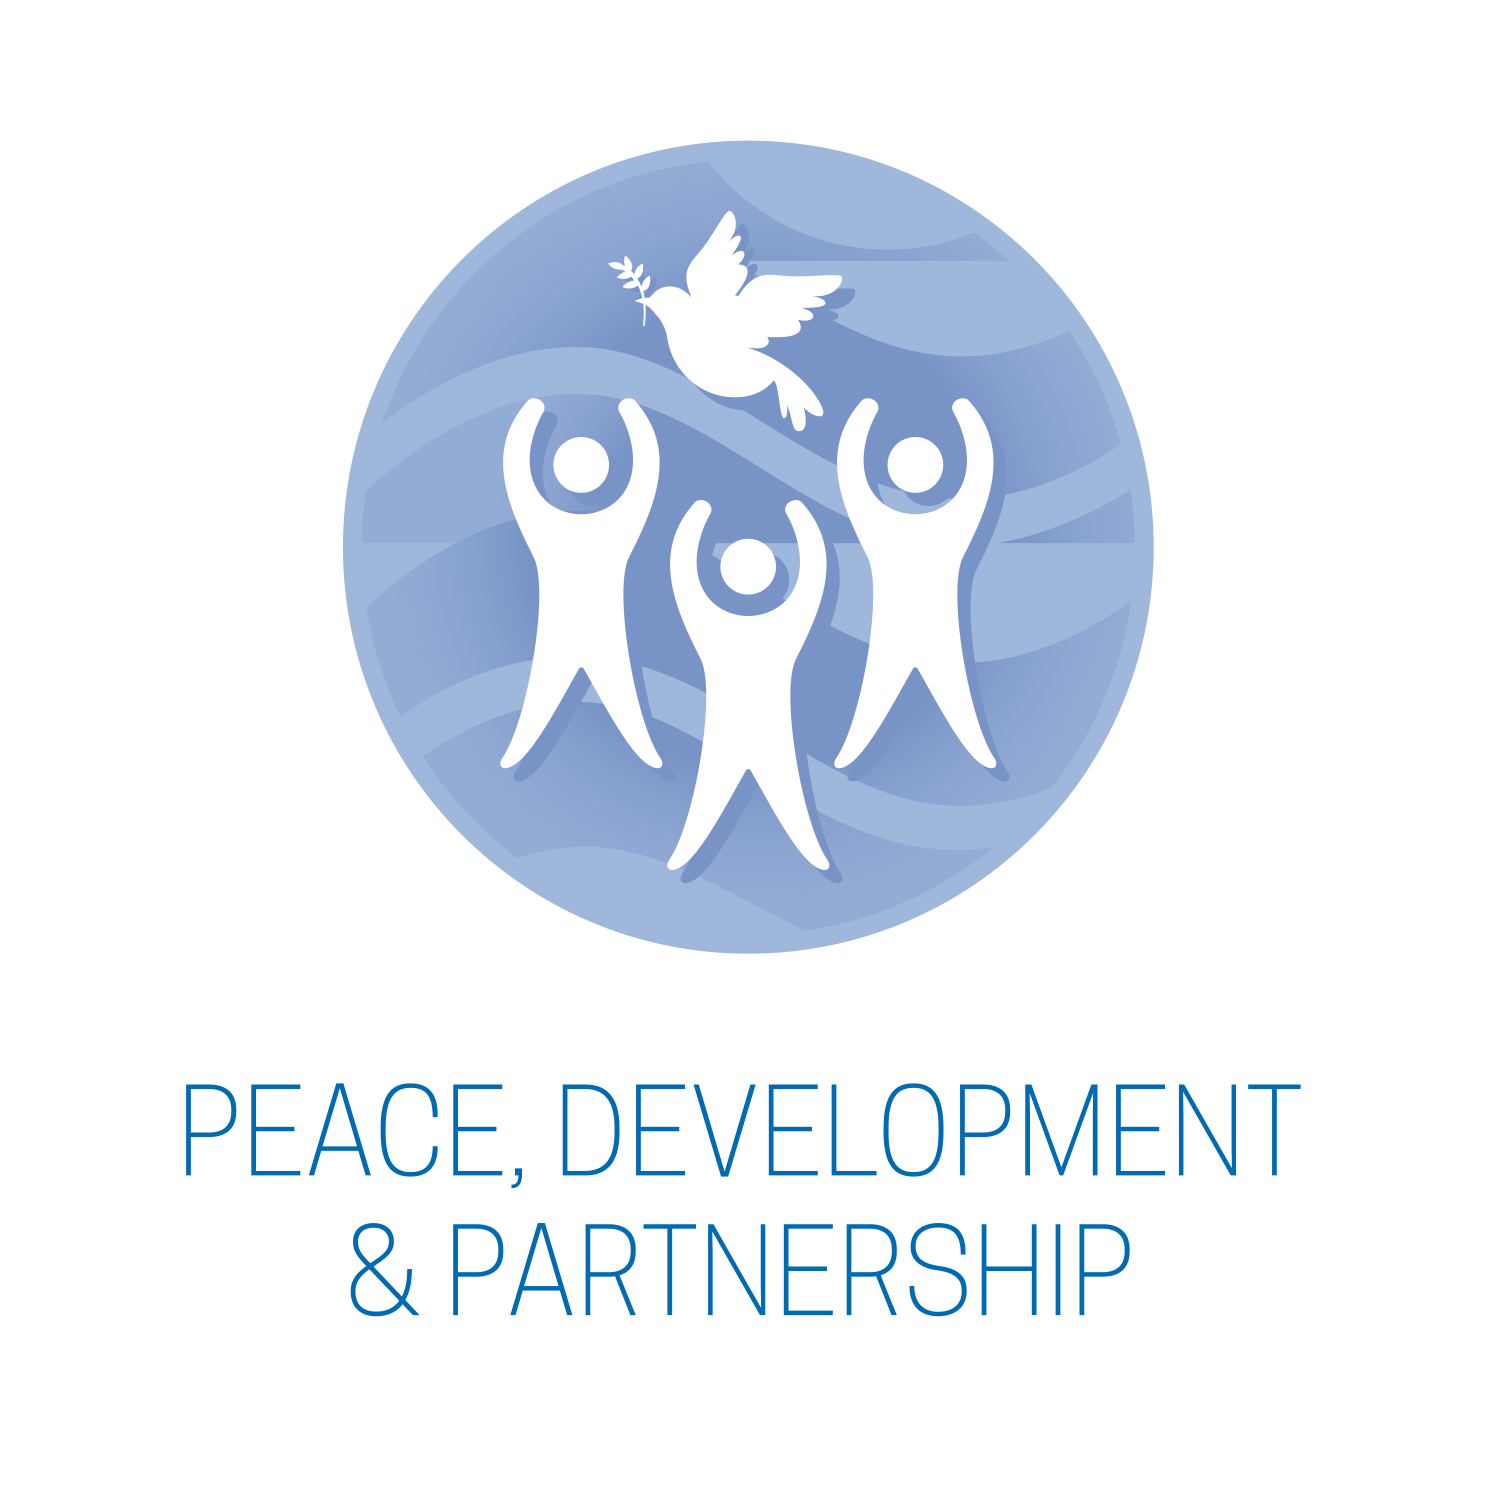 peace, development and partnership